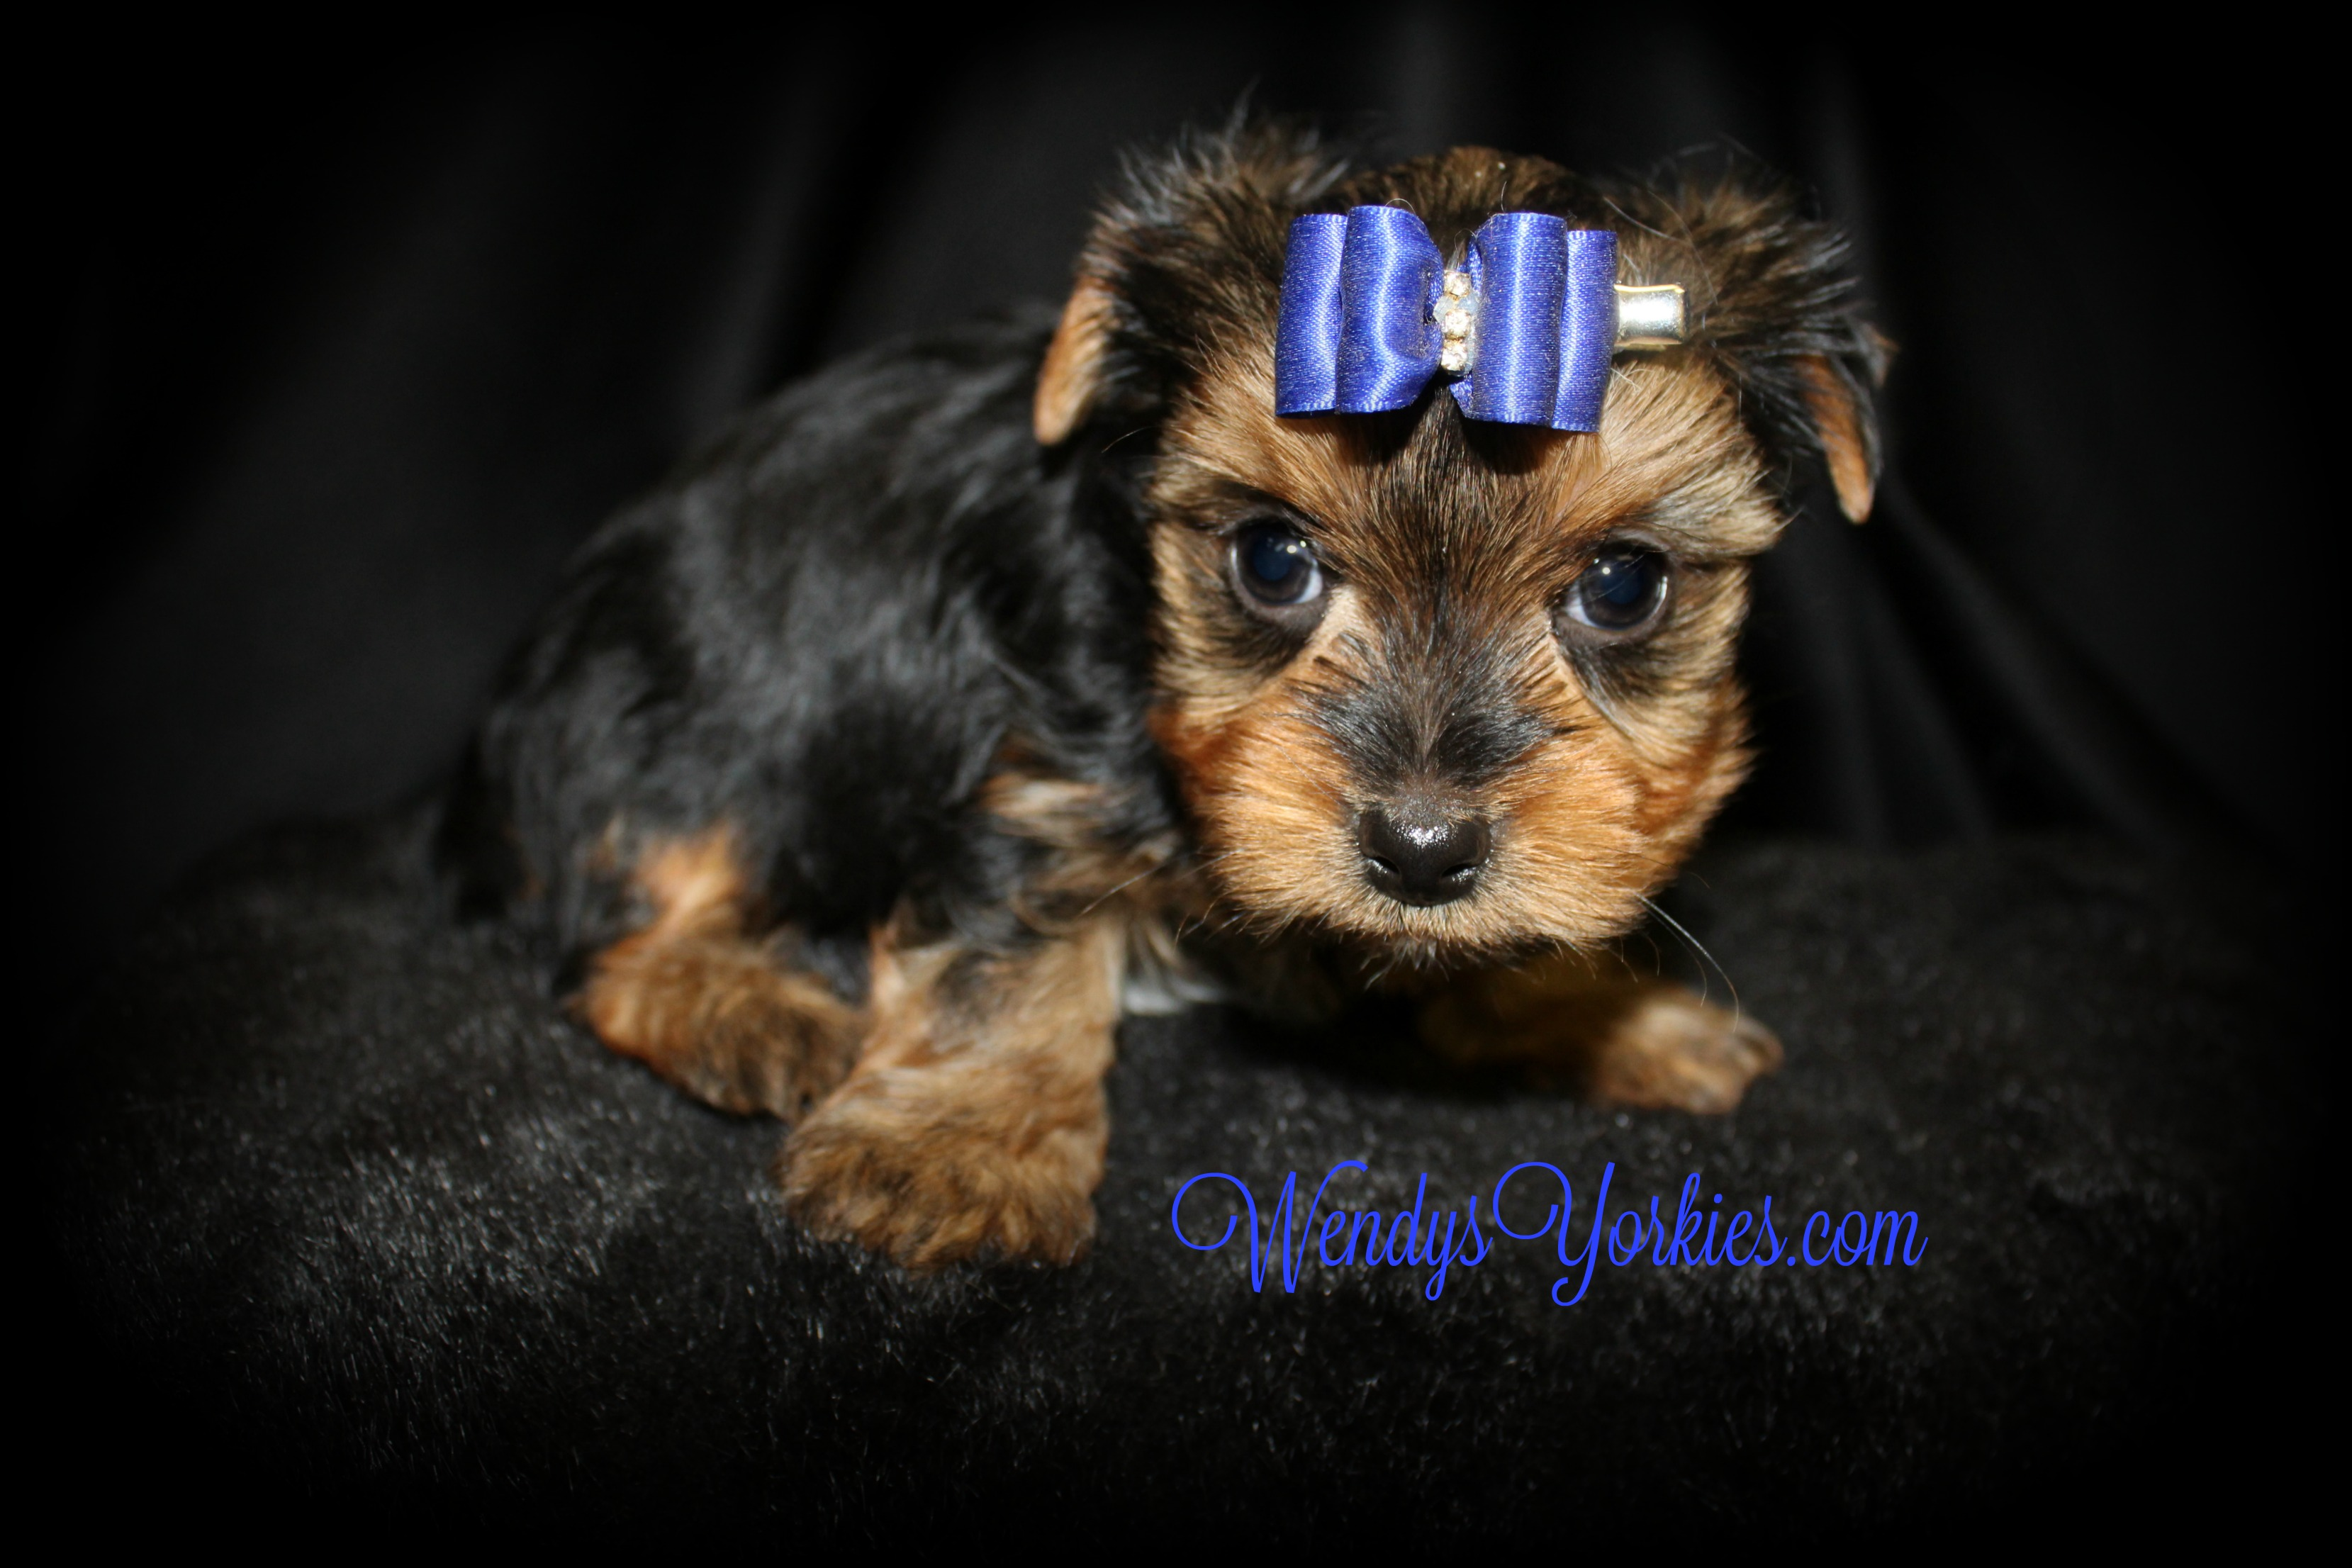 Male Yorkie puppy for sale, WendysYorkies.com